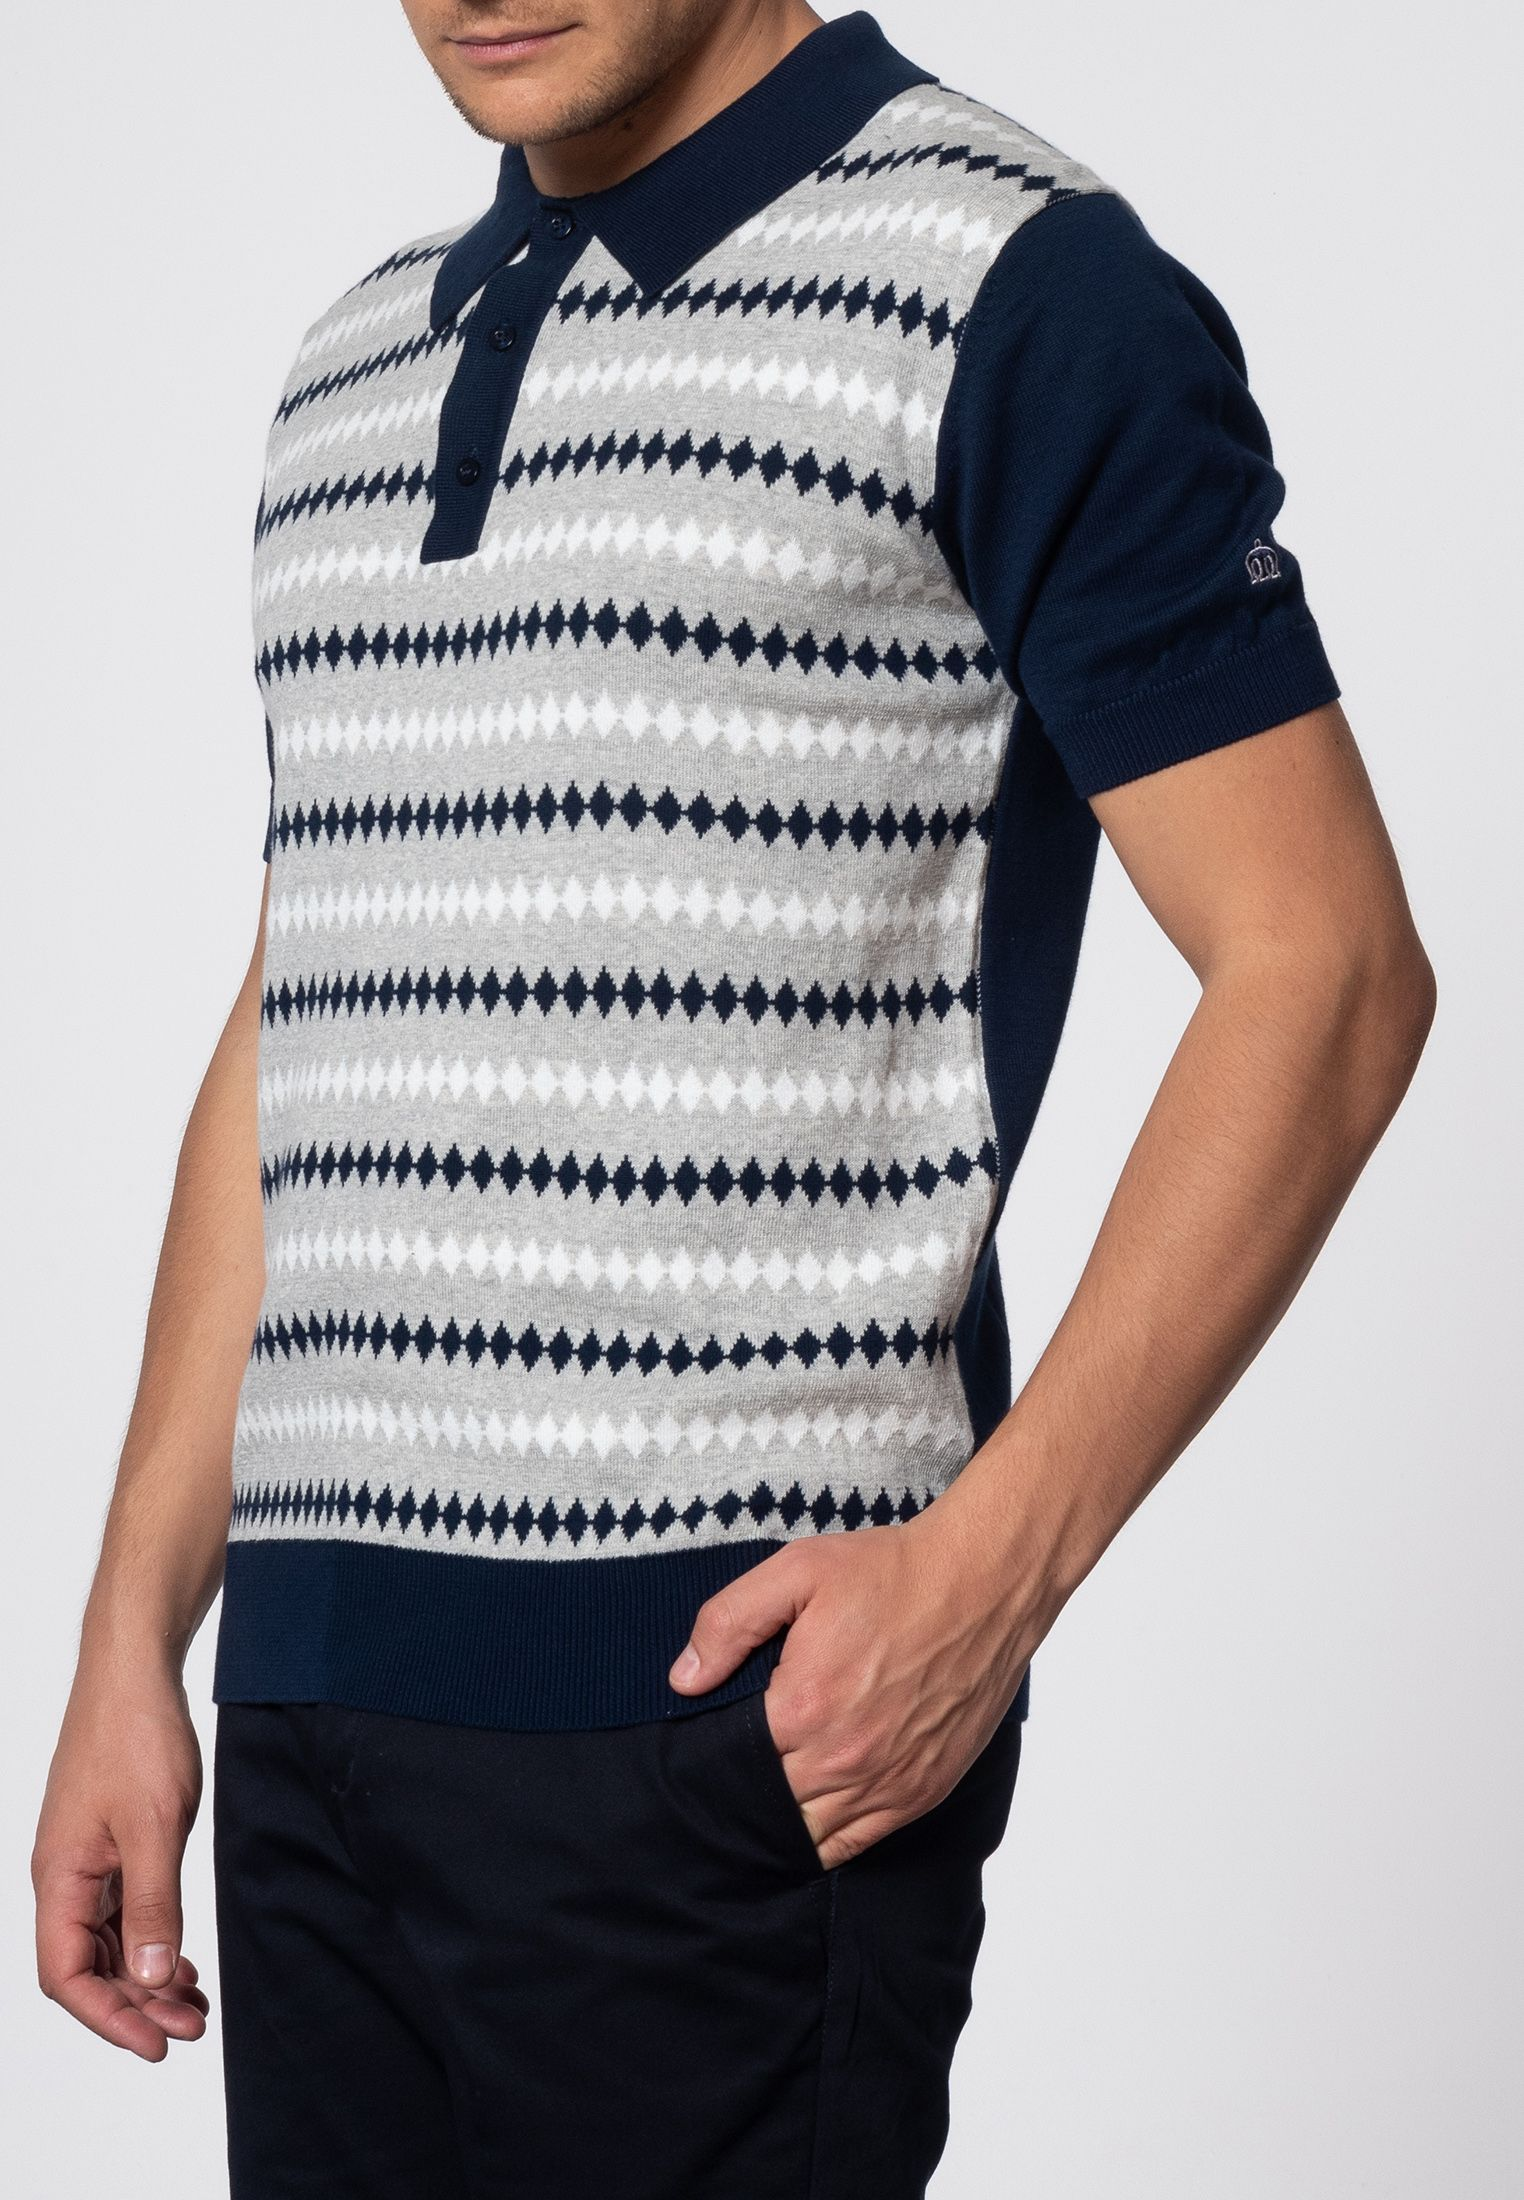 Farley Diamond Jacquard Knit Polo In Navy